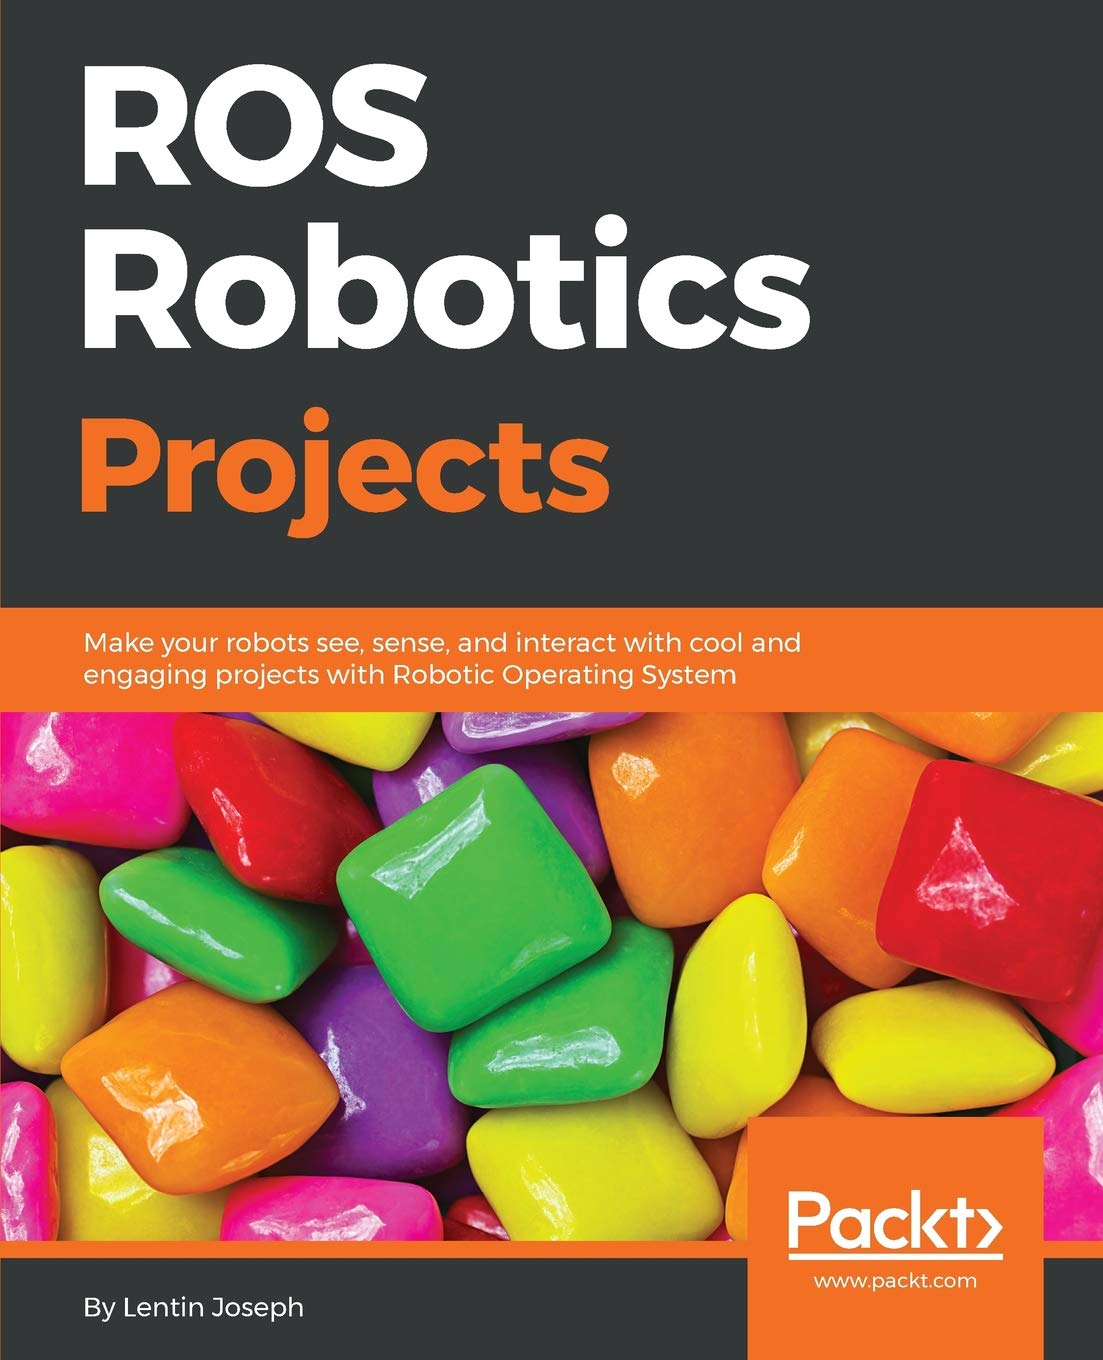 Buy ROS Robotics Projects Book Online at Low Prices in India | ROS